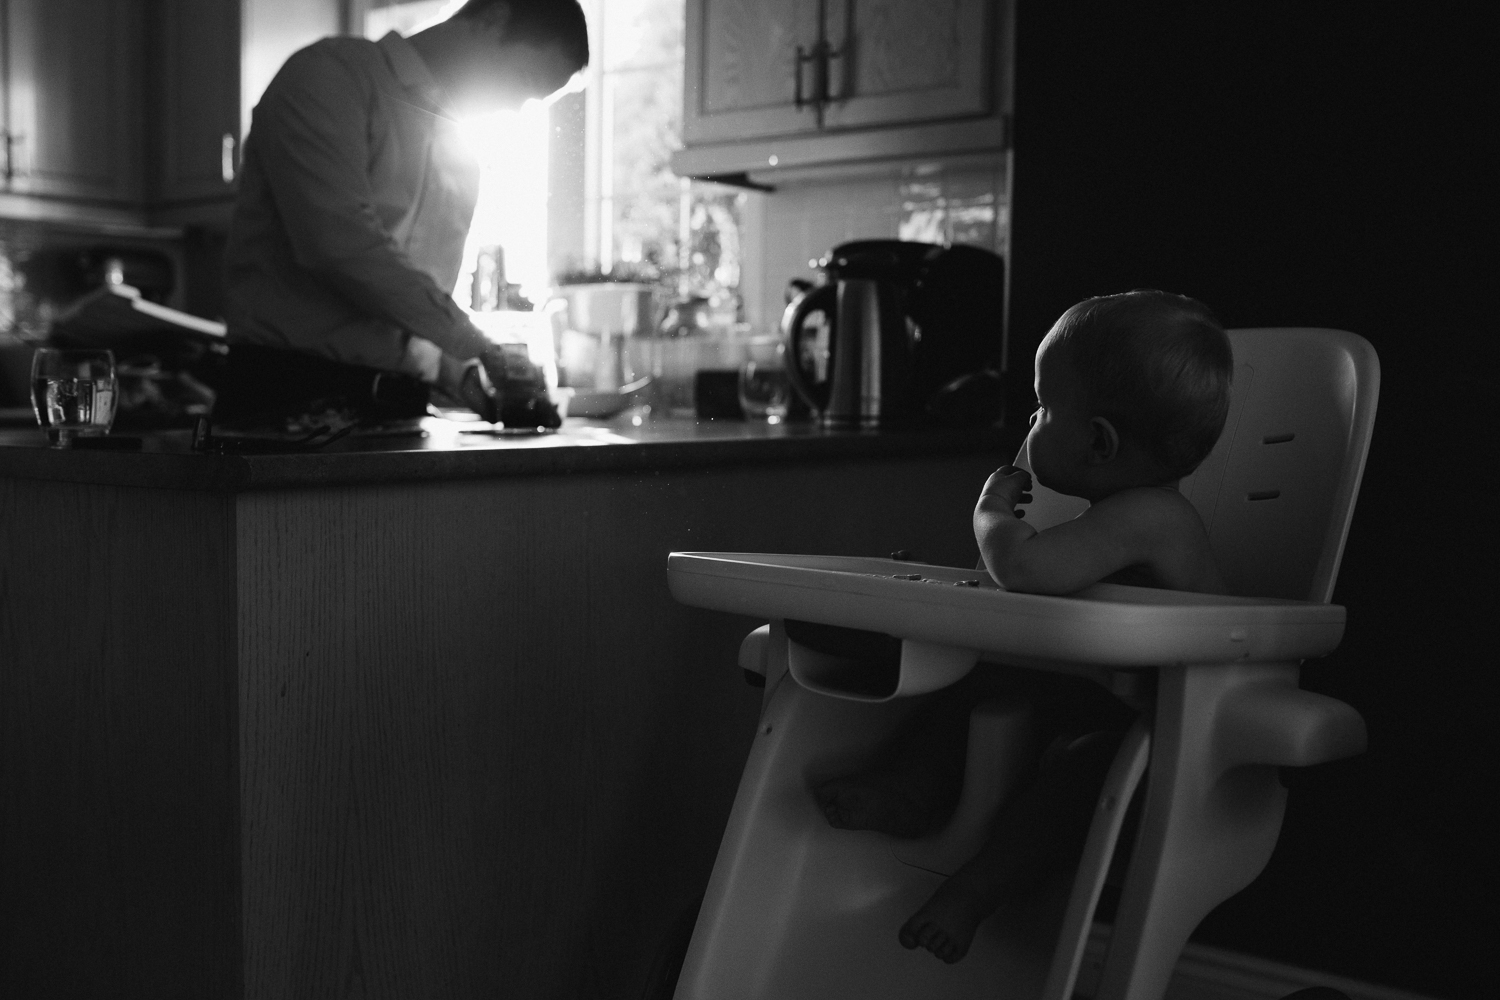 1 year old baby boy in highchair watching father in kitchen - Uxbridge Lifestyle photography